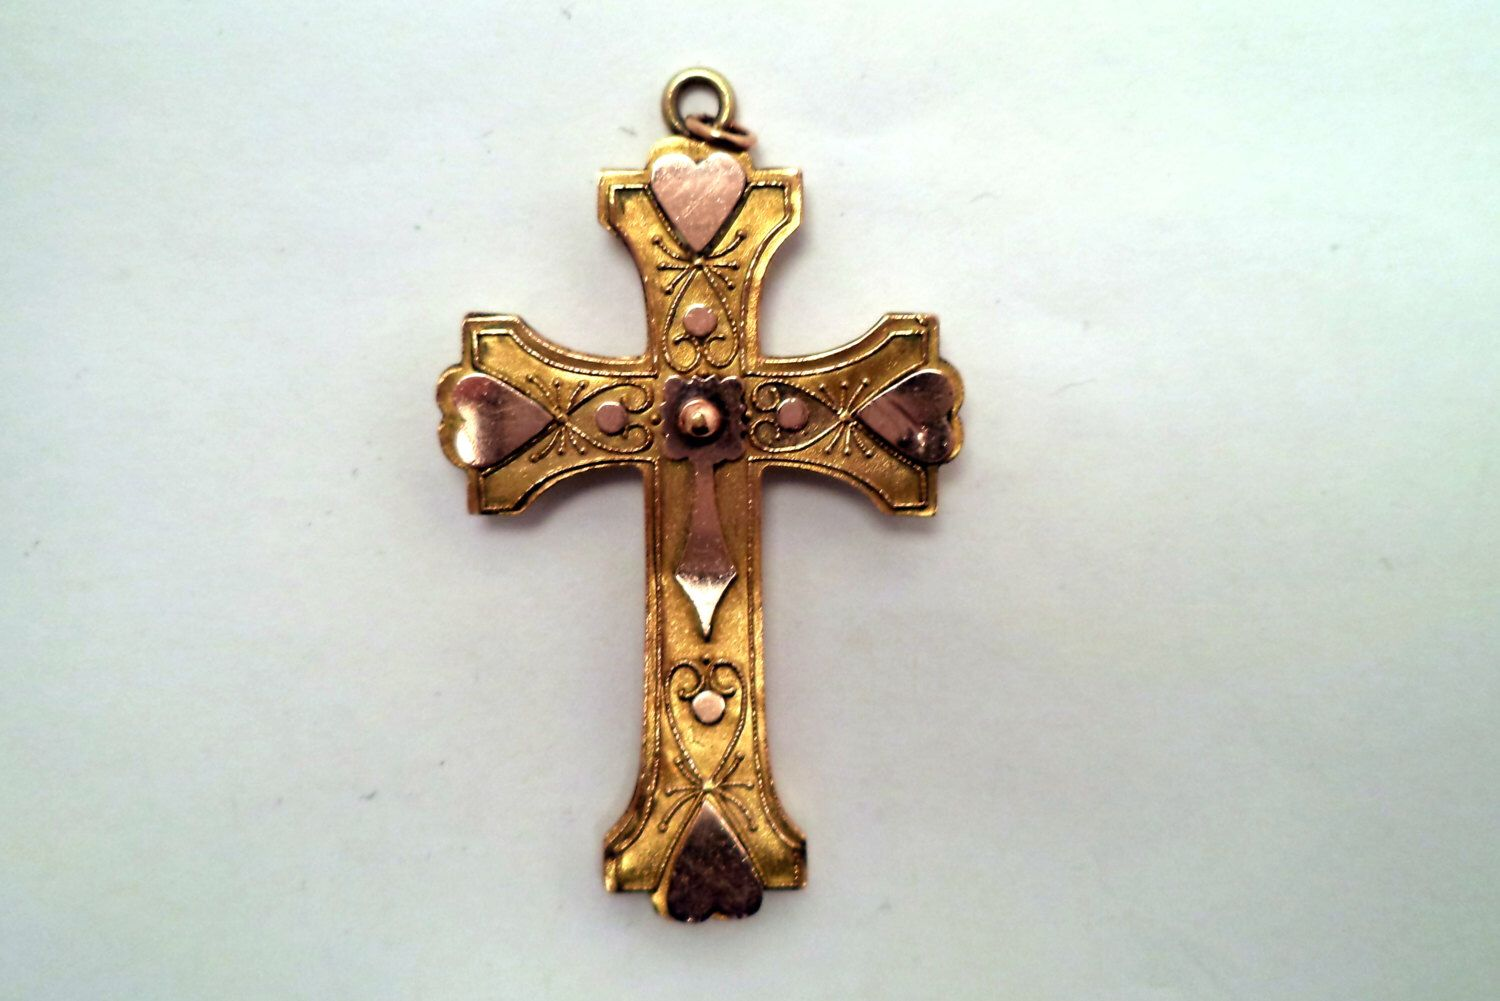 Antique Victorian Yellow and Rose Gold Filled Cross Pendant by SmallTownVintageShop on Etsy https://www.etsy.com/listing/211136708/antique-victorian-yellow-and-rose-gold